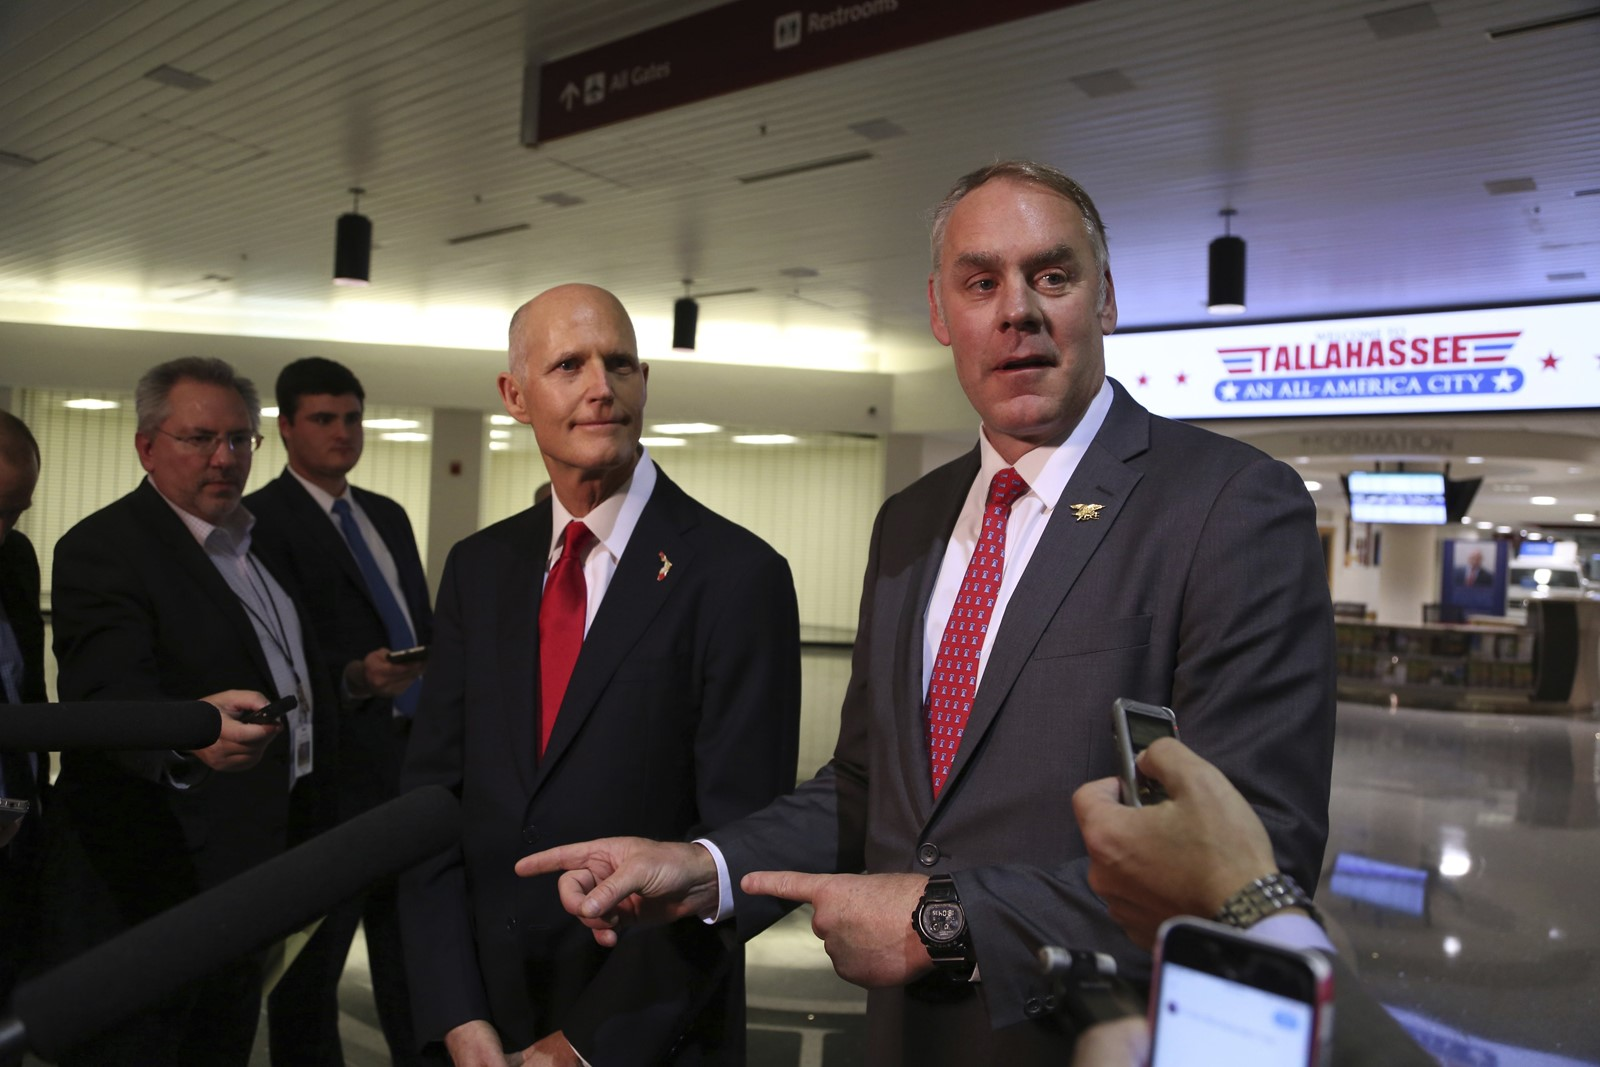 Interior Secretary Ryan Zinke, right, holds a news conference in Tallahassee, Florida, with Republican Governor Rick Scott to announce that the offshore oil drilling plan unveiled last week won't include Florida. — Photograph: Scott Keeler/Tampa Bay Times.